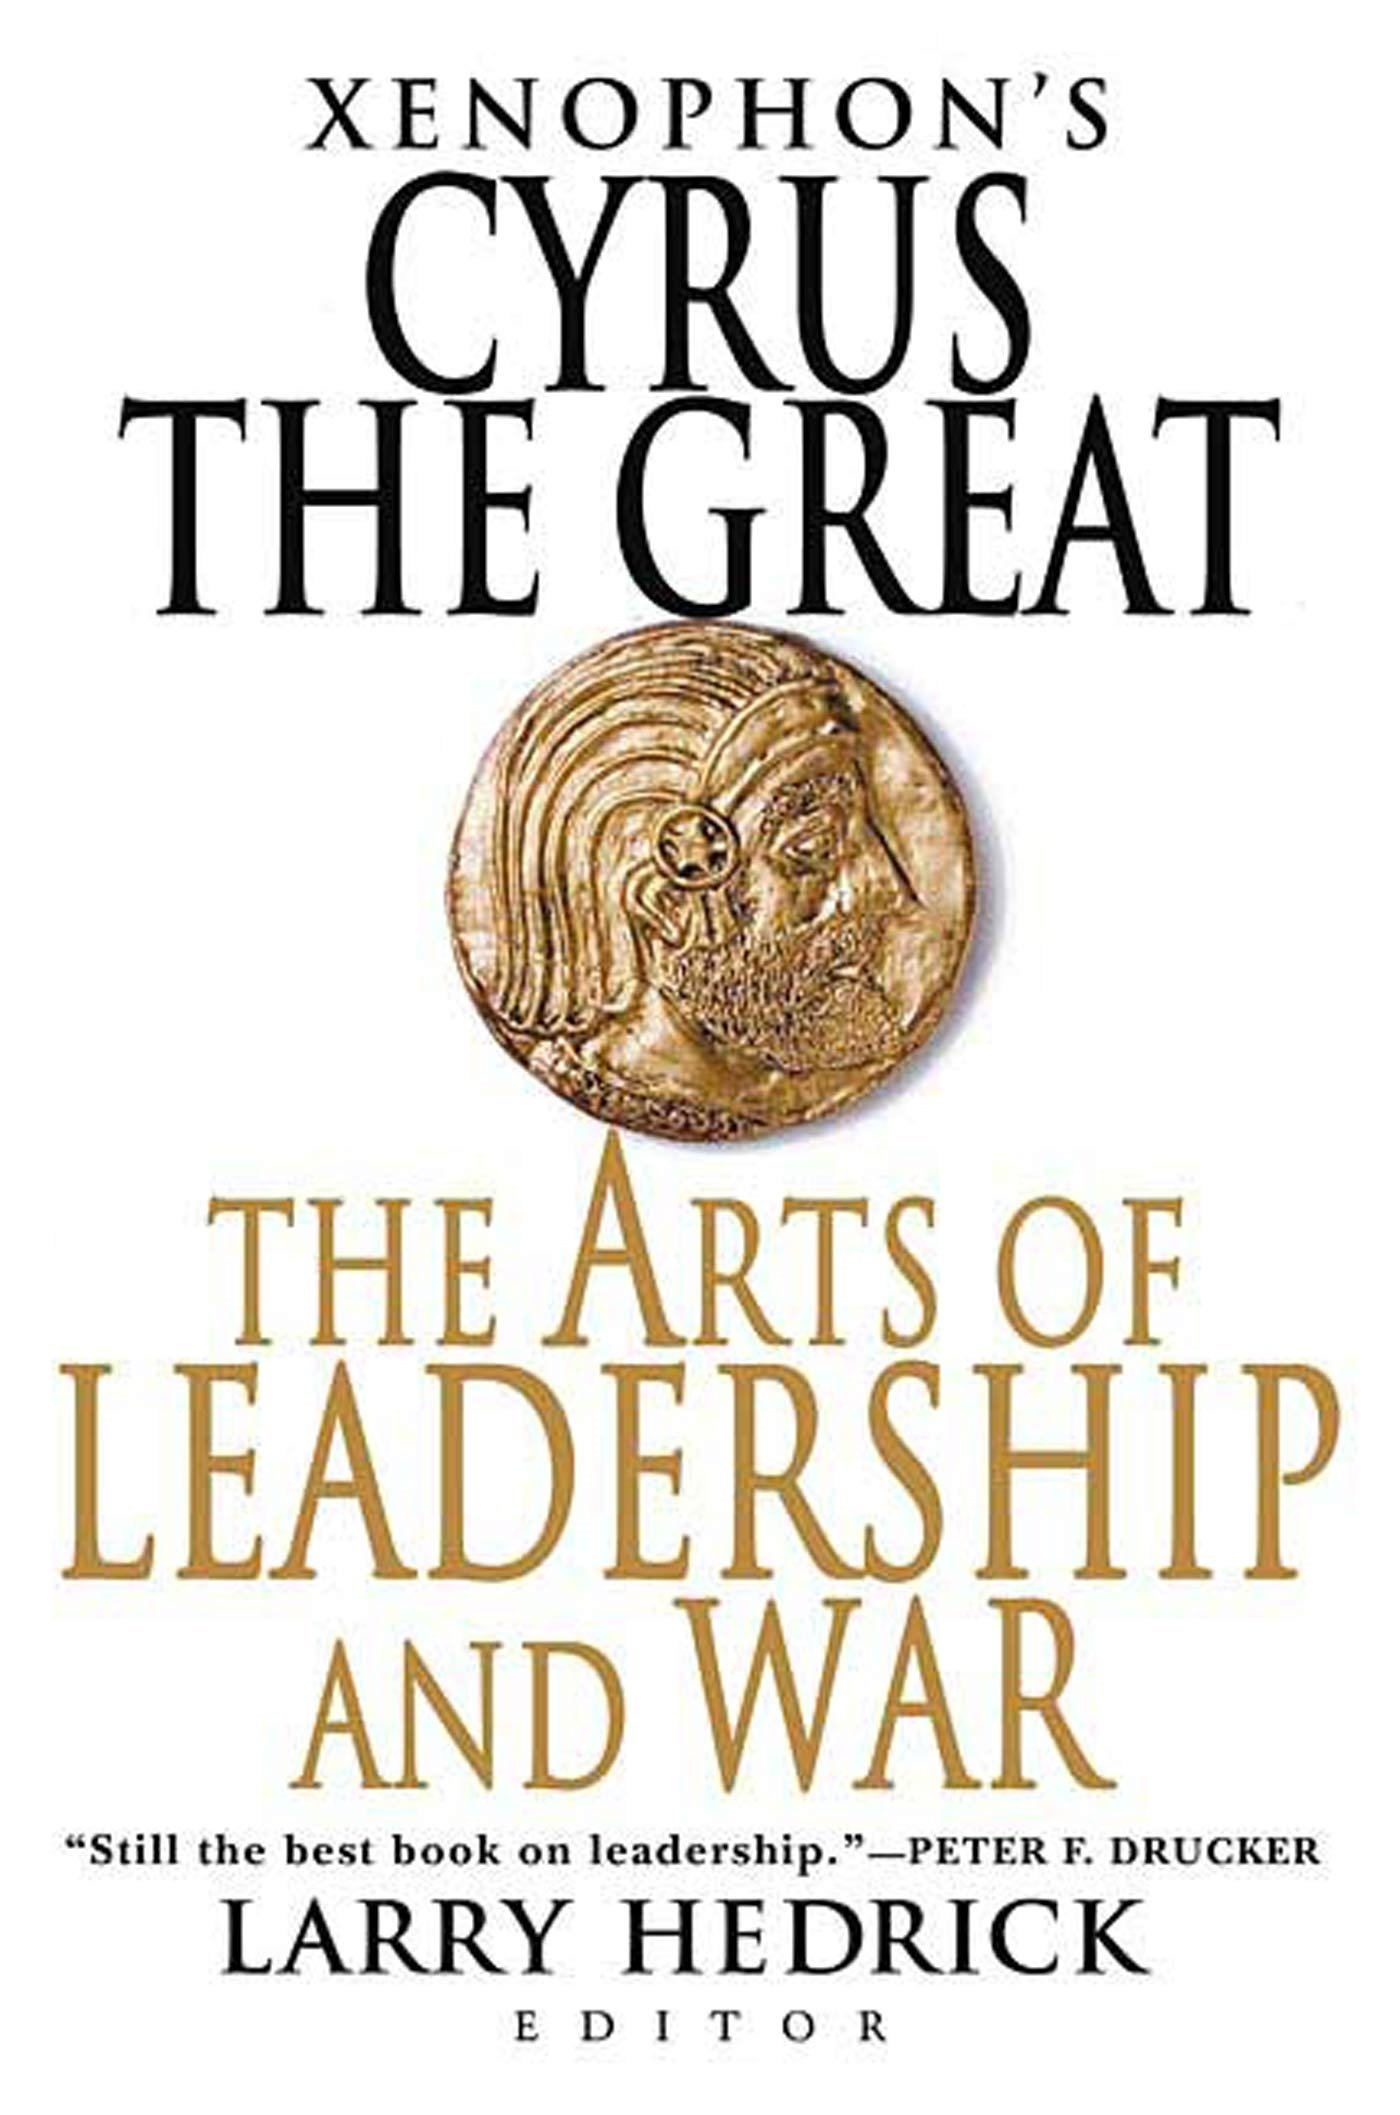 Read Online Xenophon's Cyrus the Great: The Arts of Leadership and War PDF